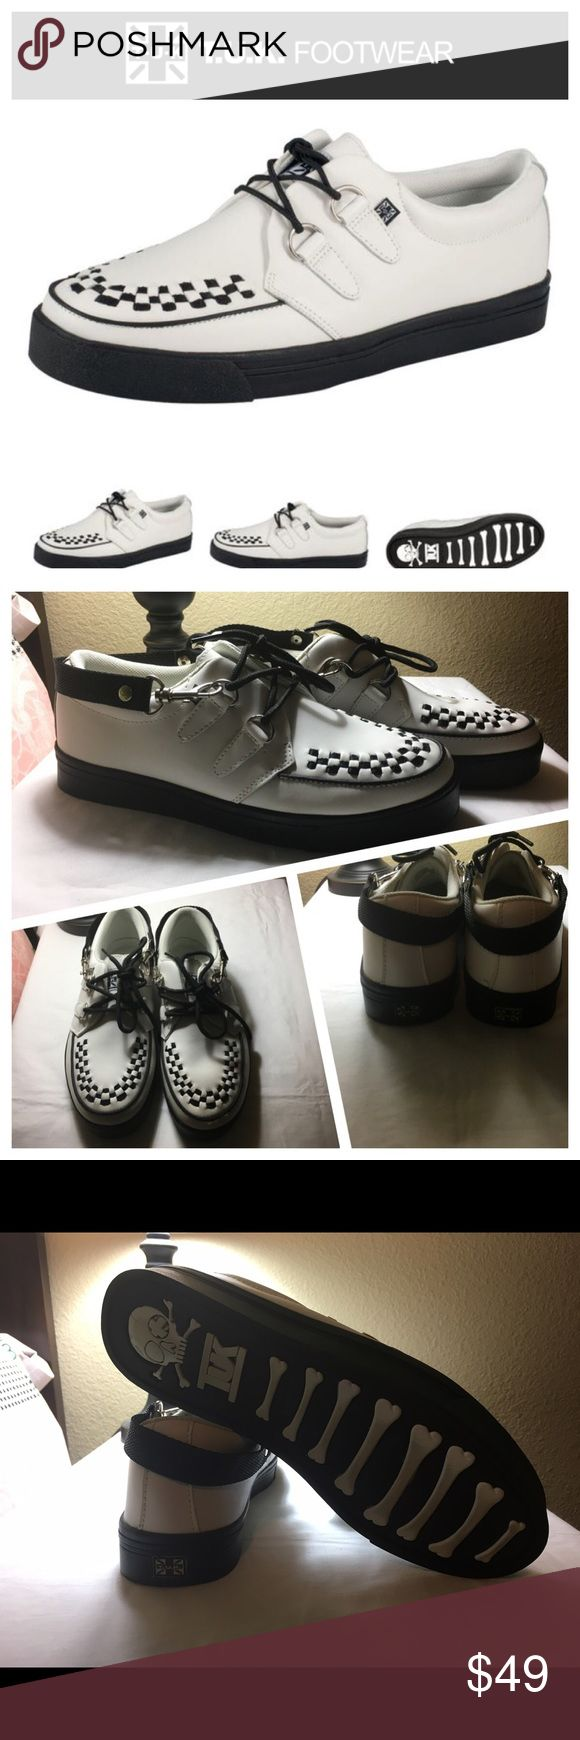 TUK black & white creeper sneaker w/strap size 7 TUK black and white 2 D ring creeper sneaker with strap in men's size 7. Shoes are gently worn and in very good used condition. T.U.K Shoes Sneakers